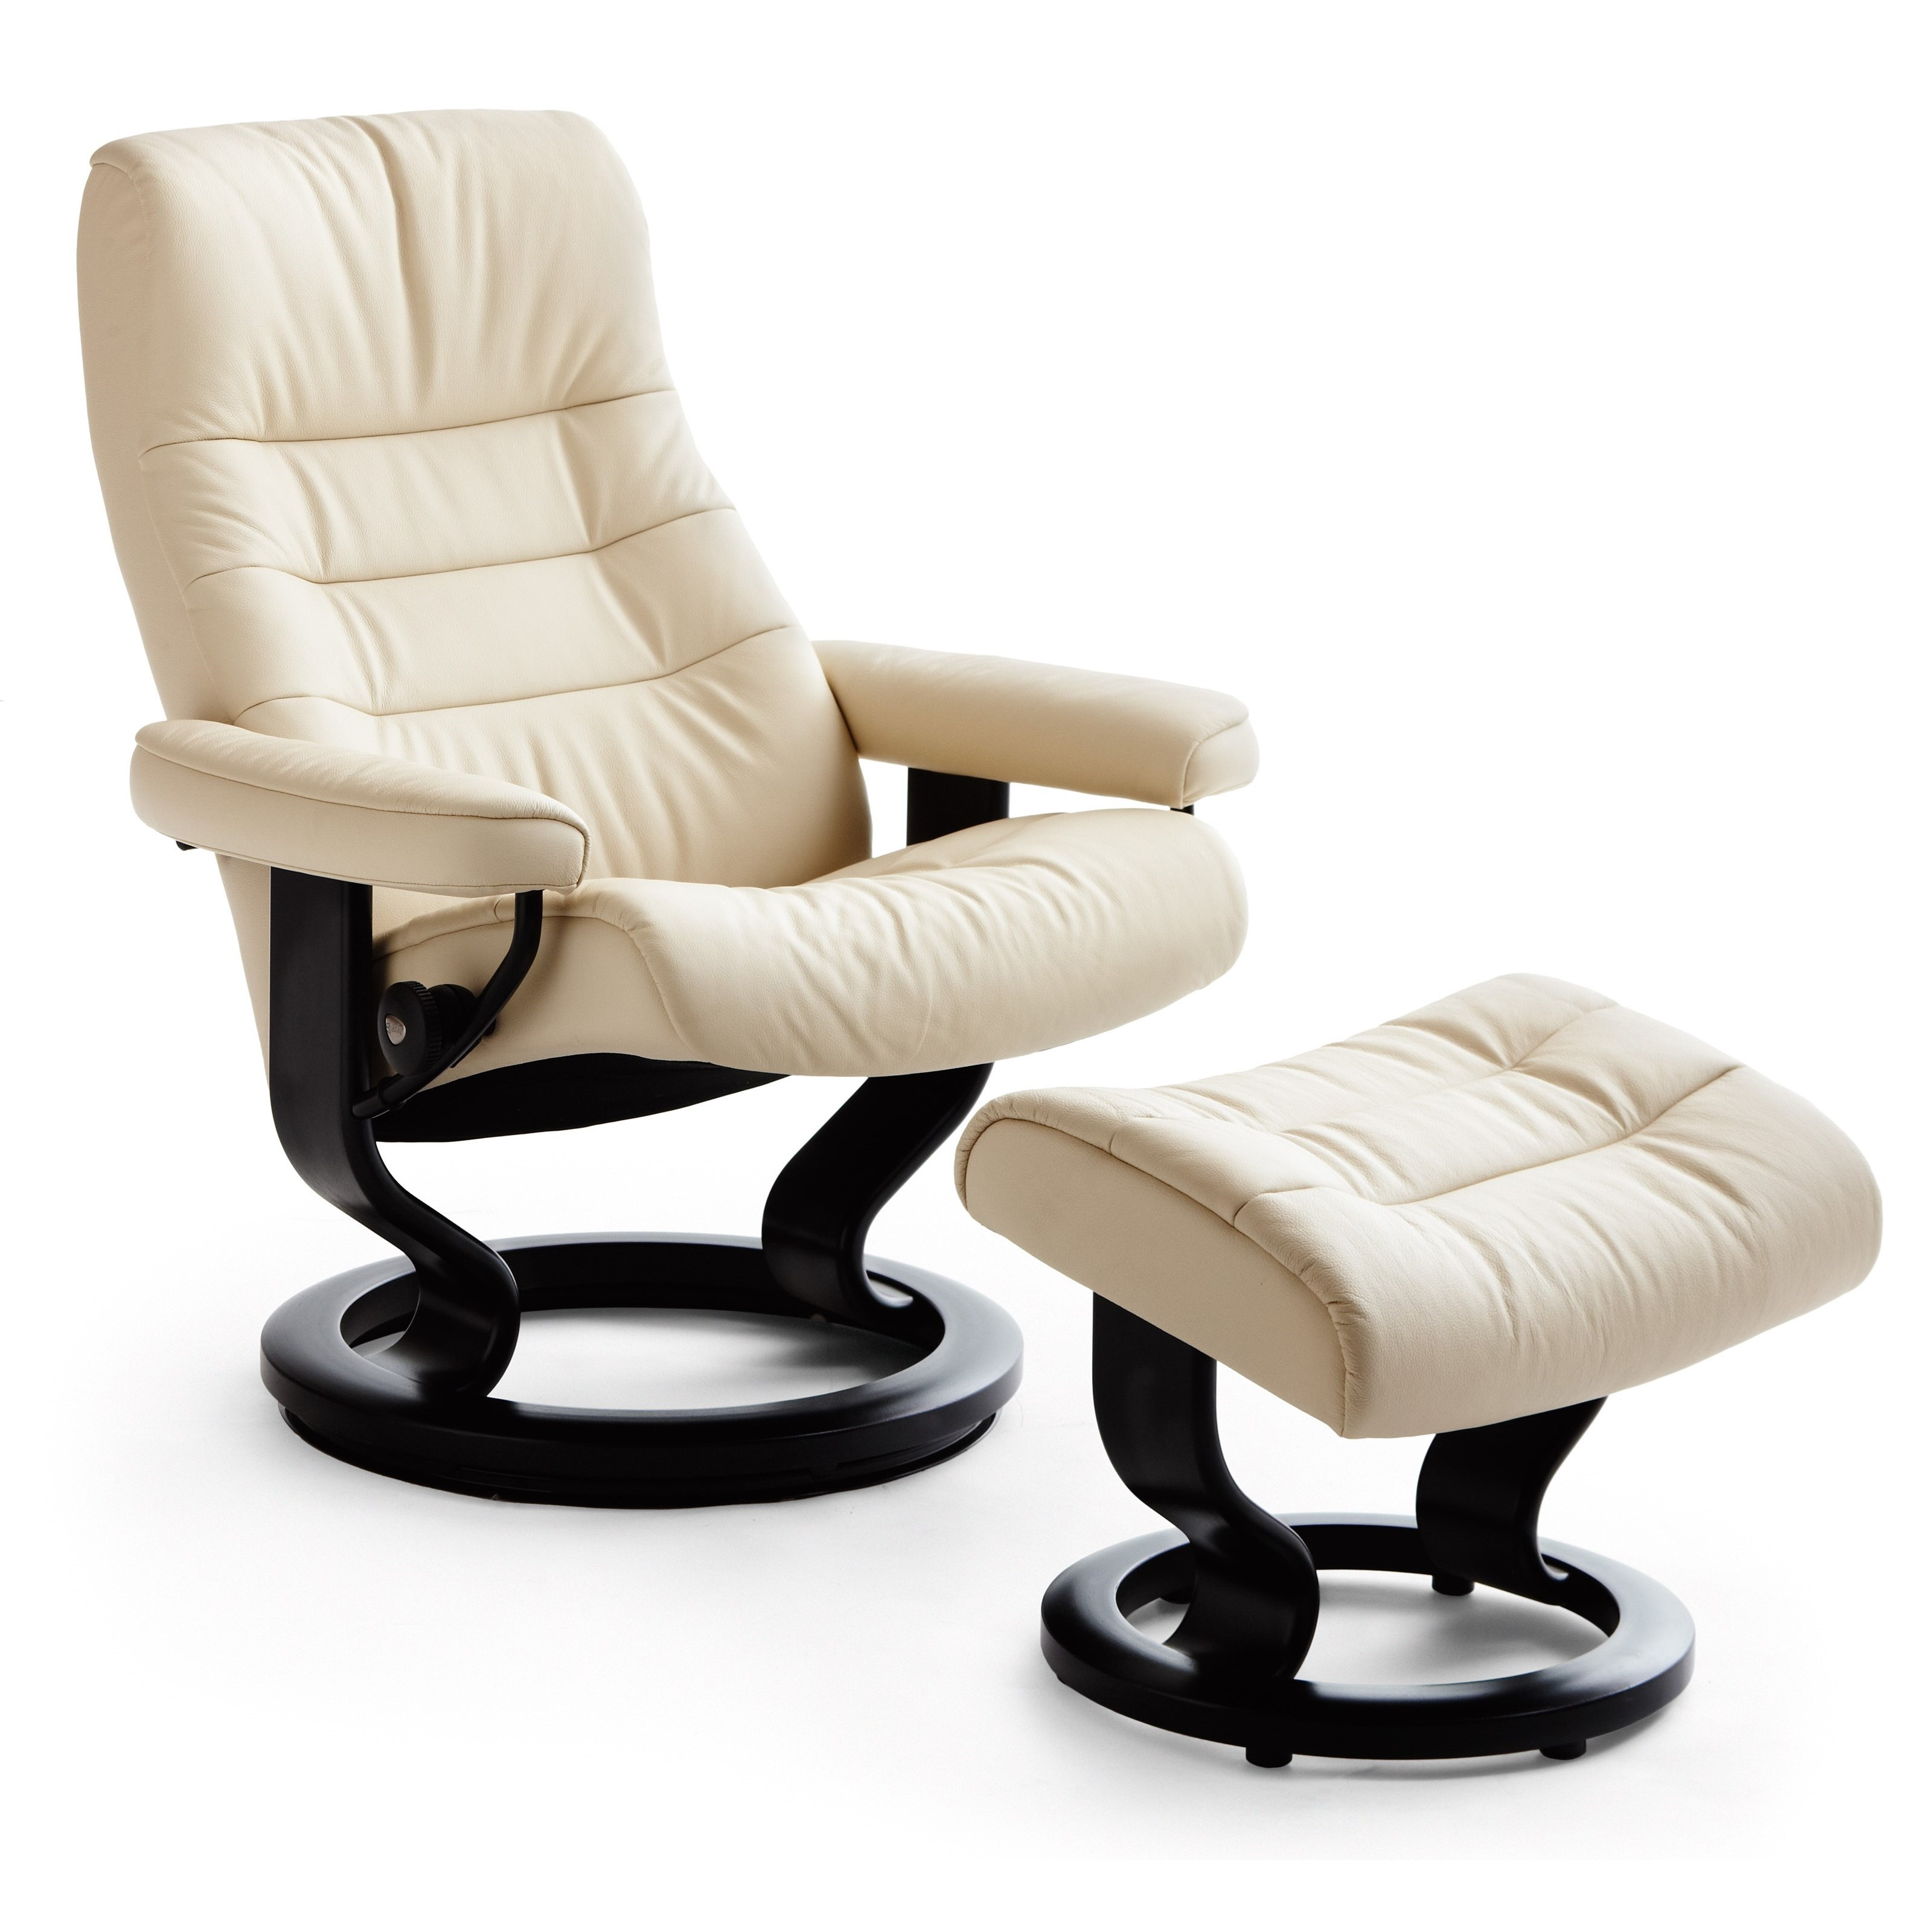 Opal Small Opal Classic Chair by Stressless at Baer's Furniture